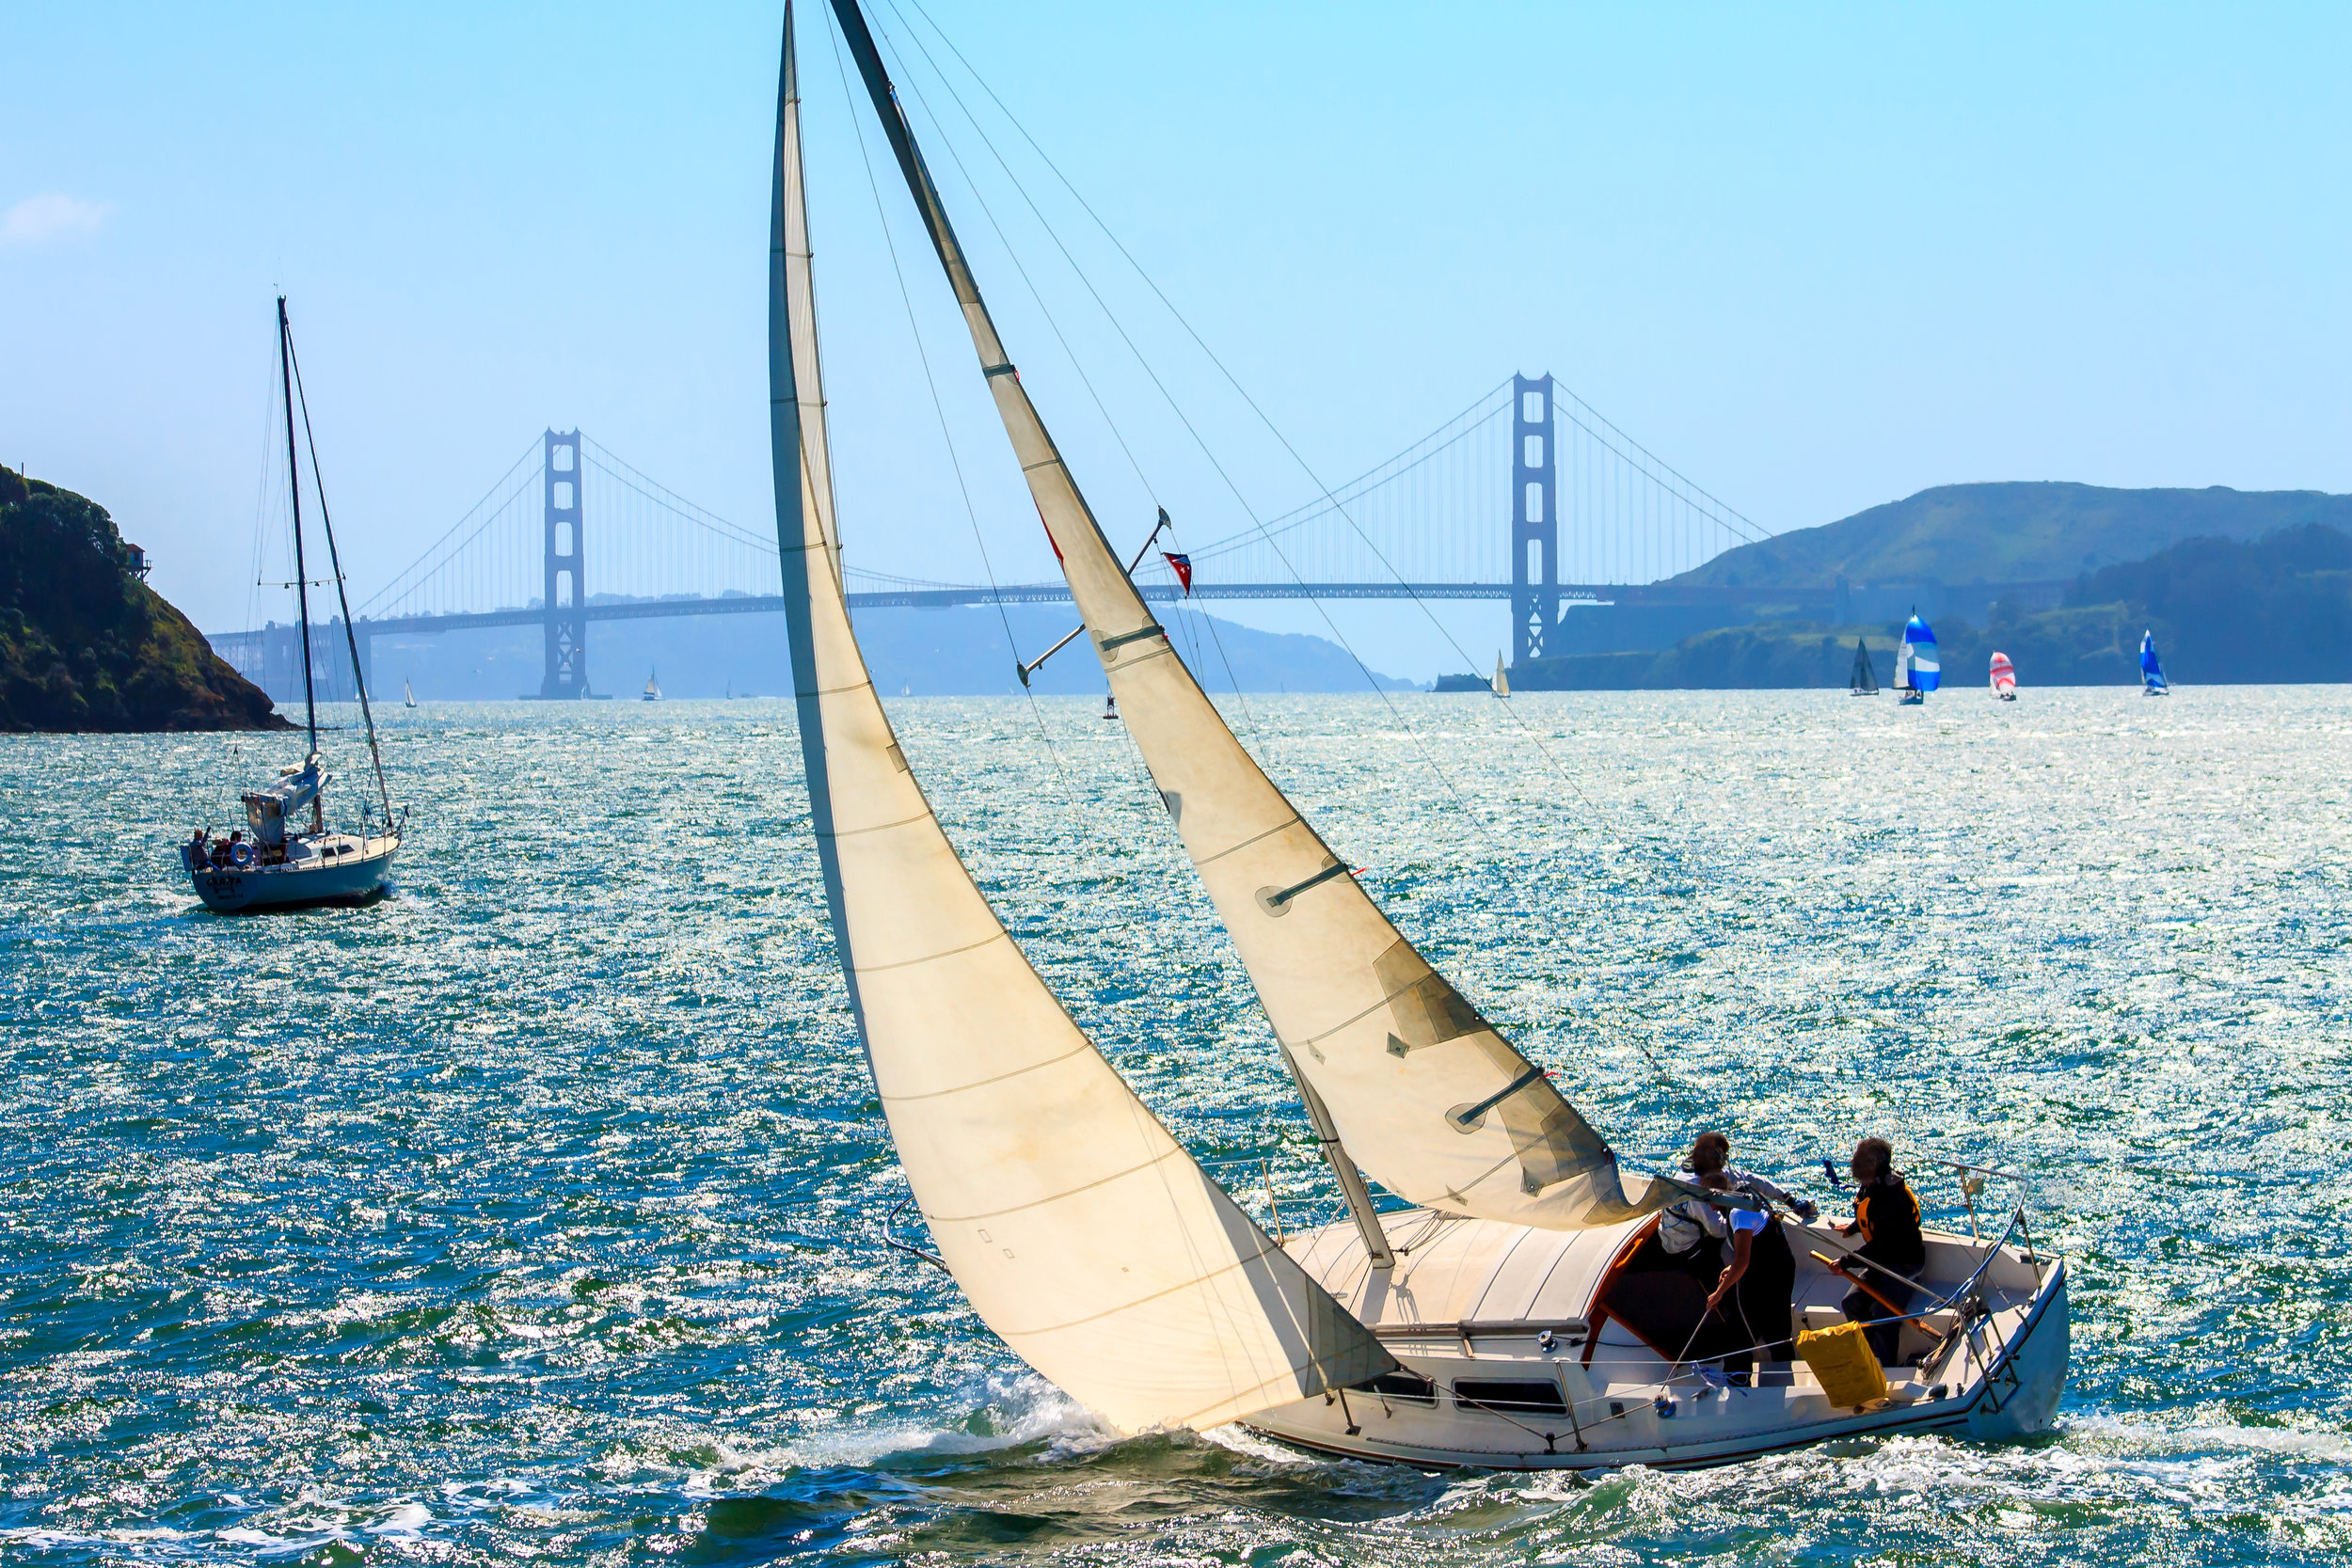 Set sail on the San Francisco Bay. Photo on Shutterstock